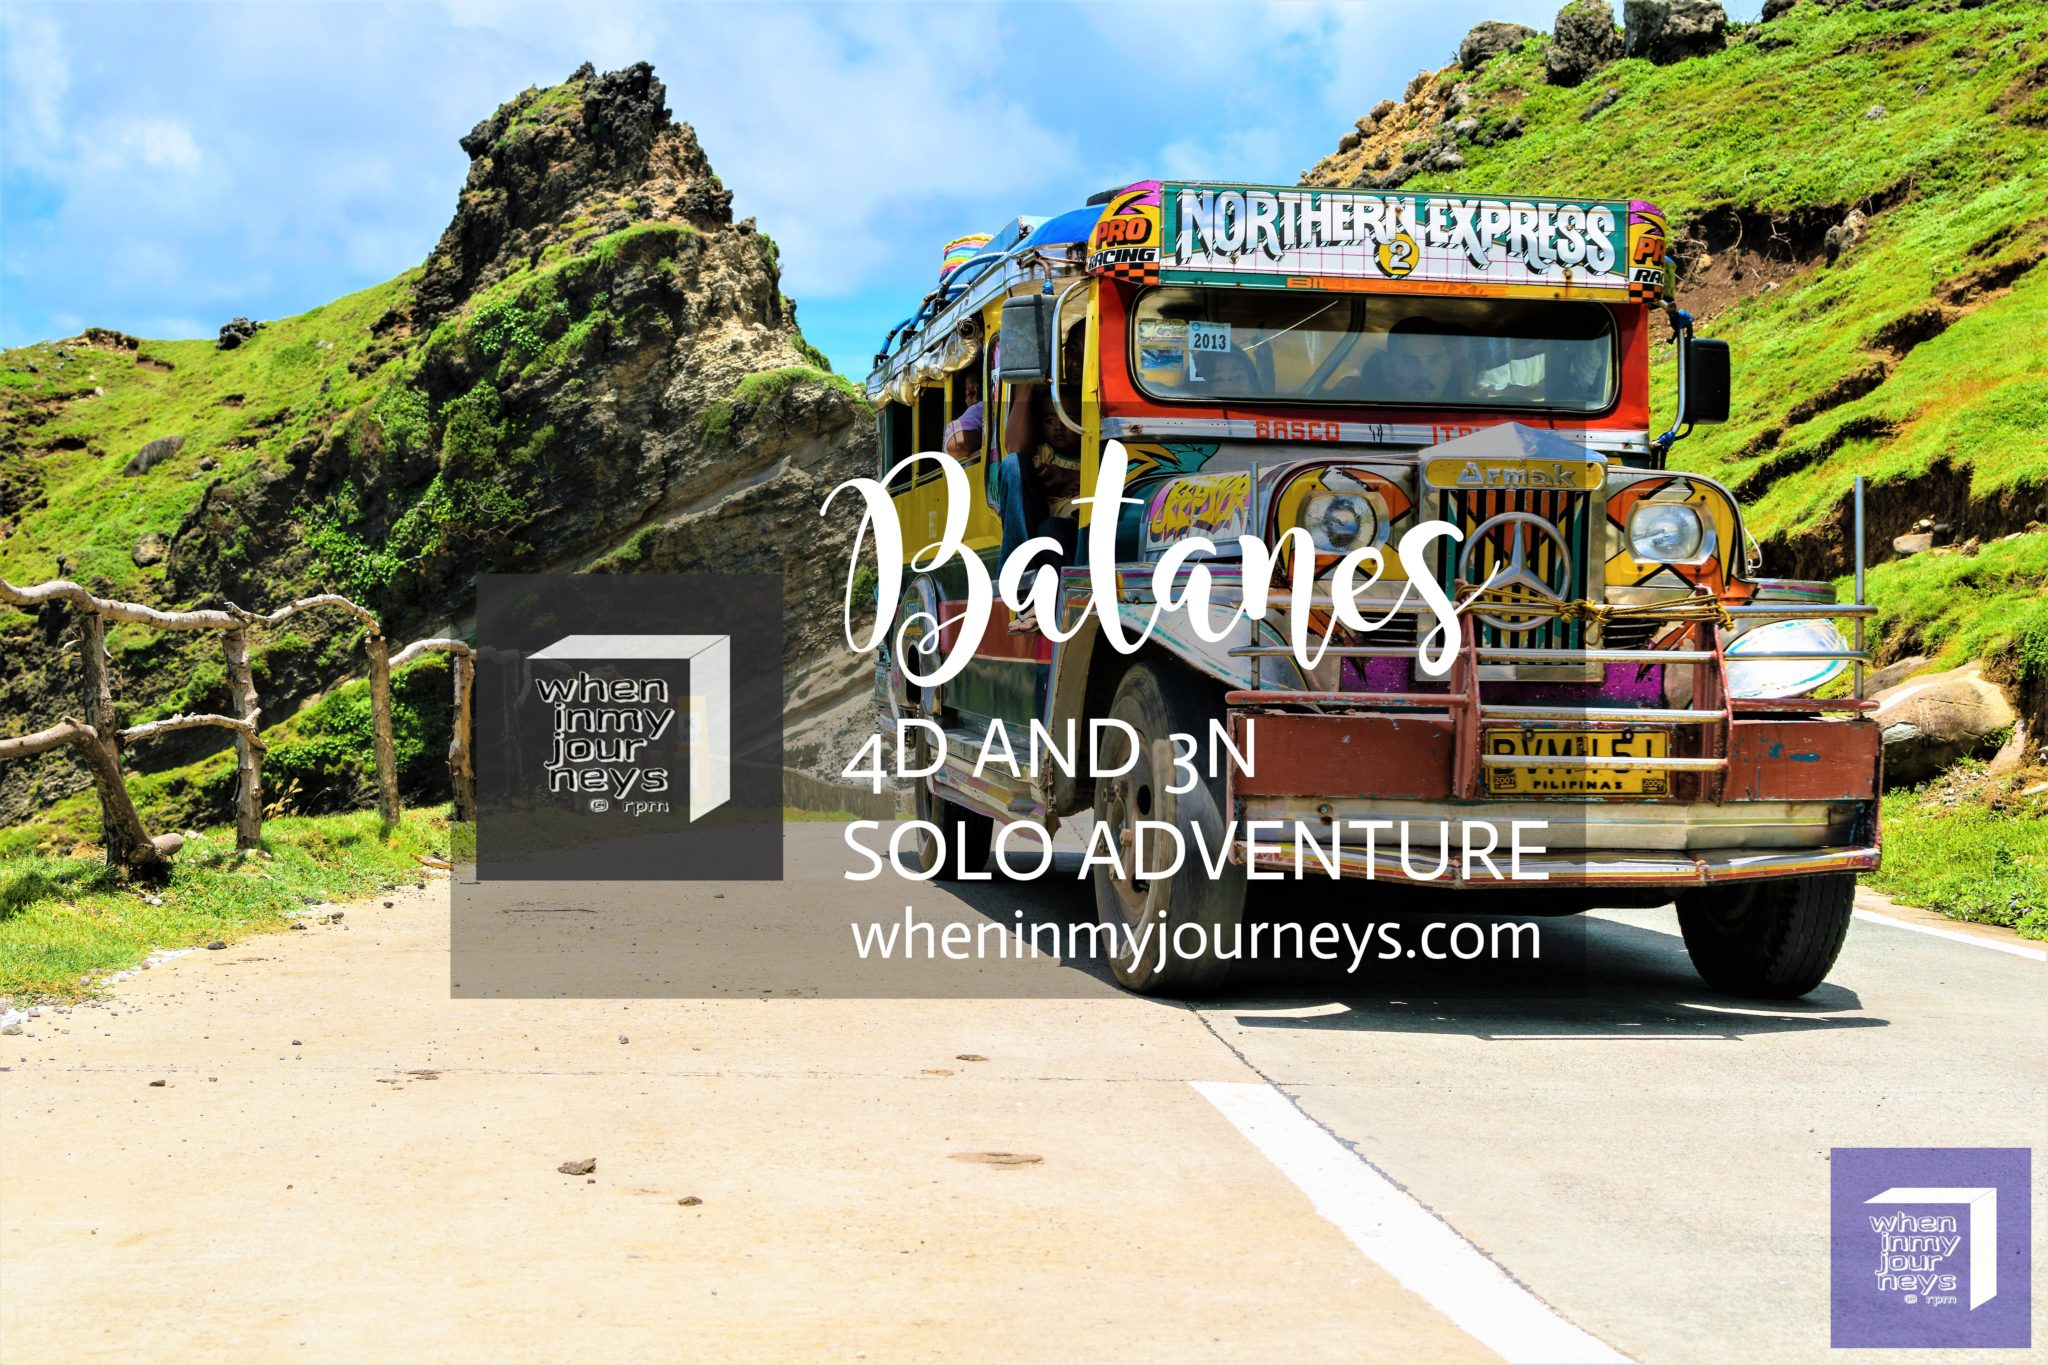 Batanes 4D and 3N Solo Adventure 4